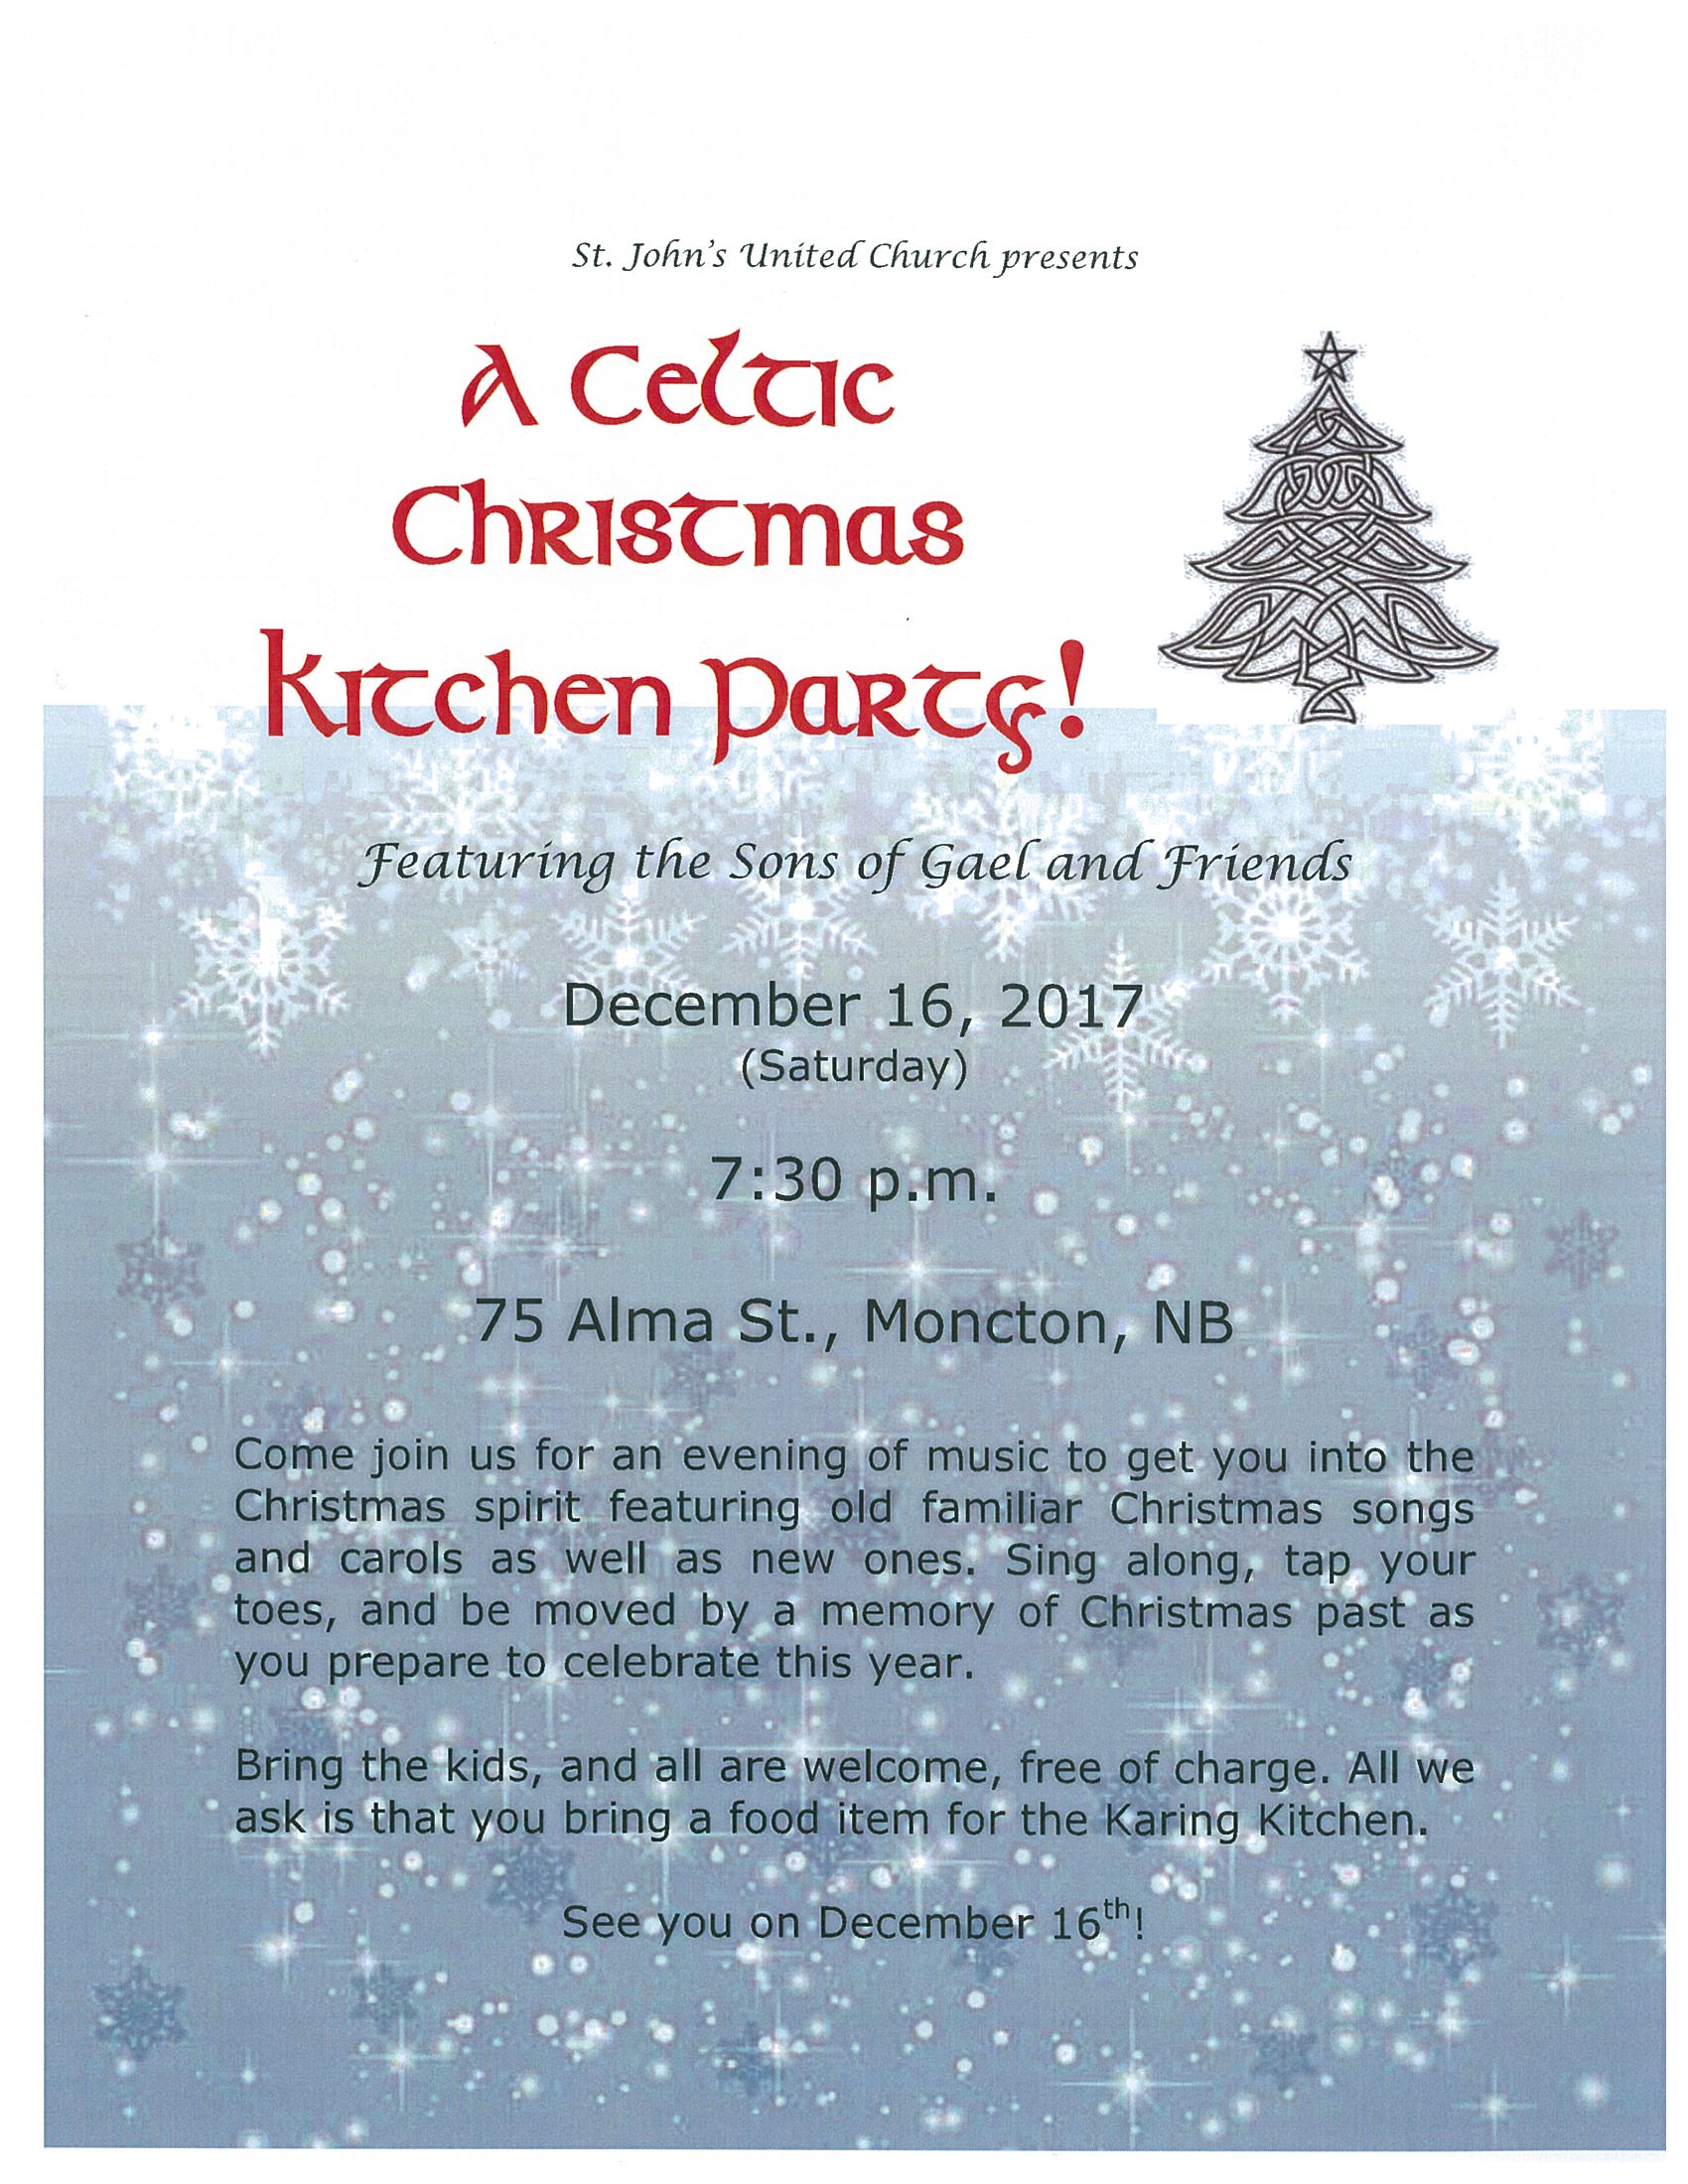 A Celtic Christmas Kitchen Party!